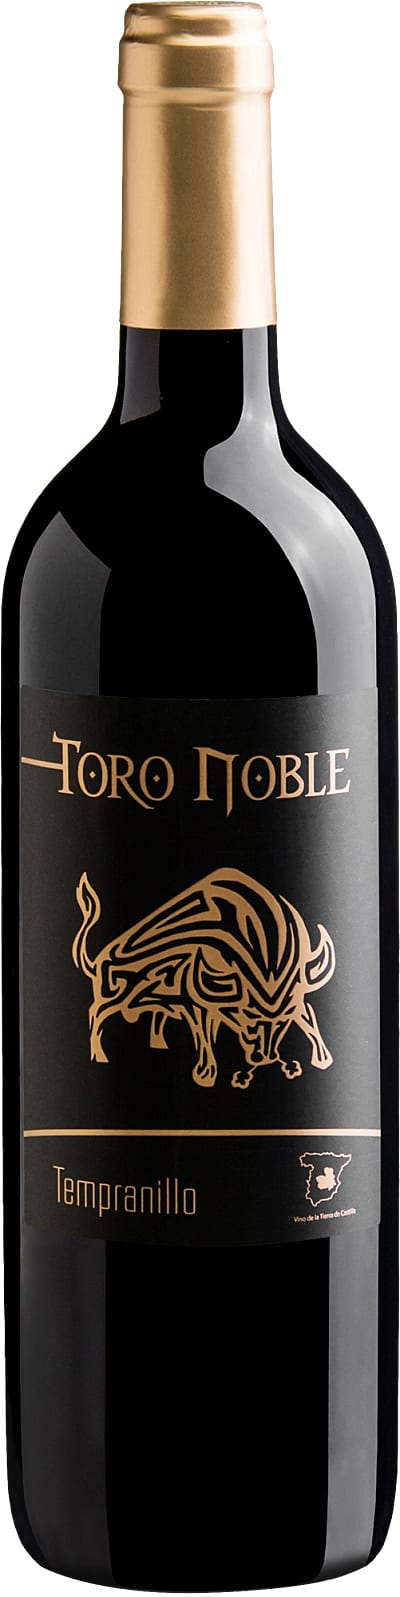 Toro Noble Trempranillo 2015